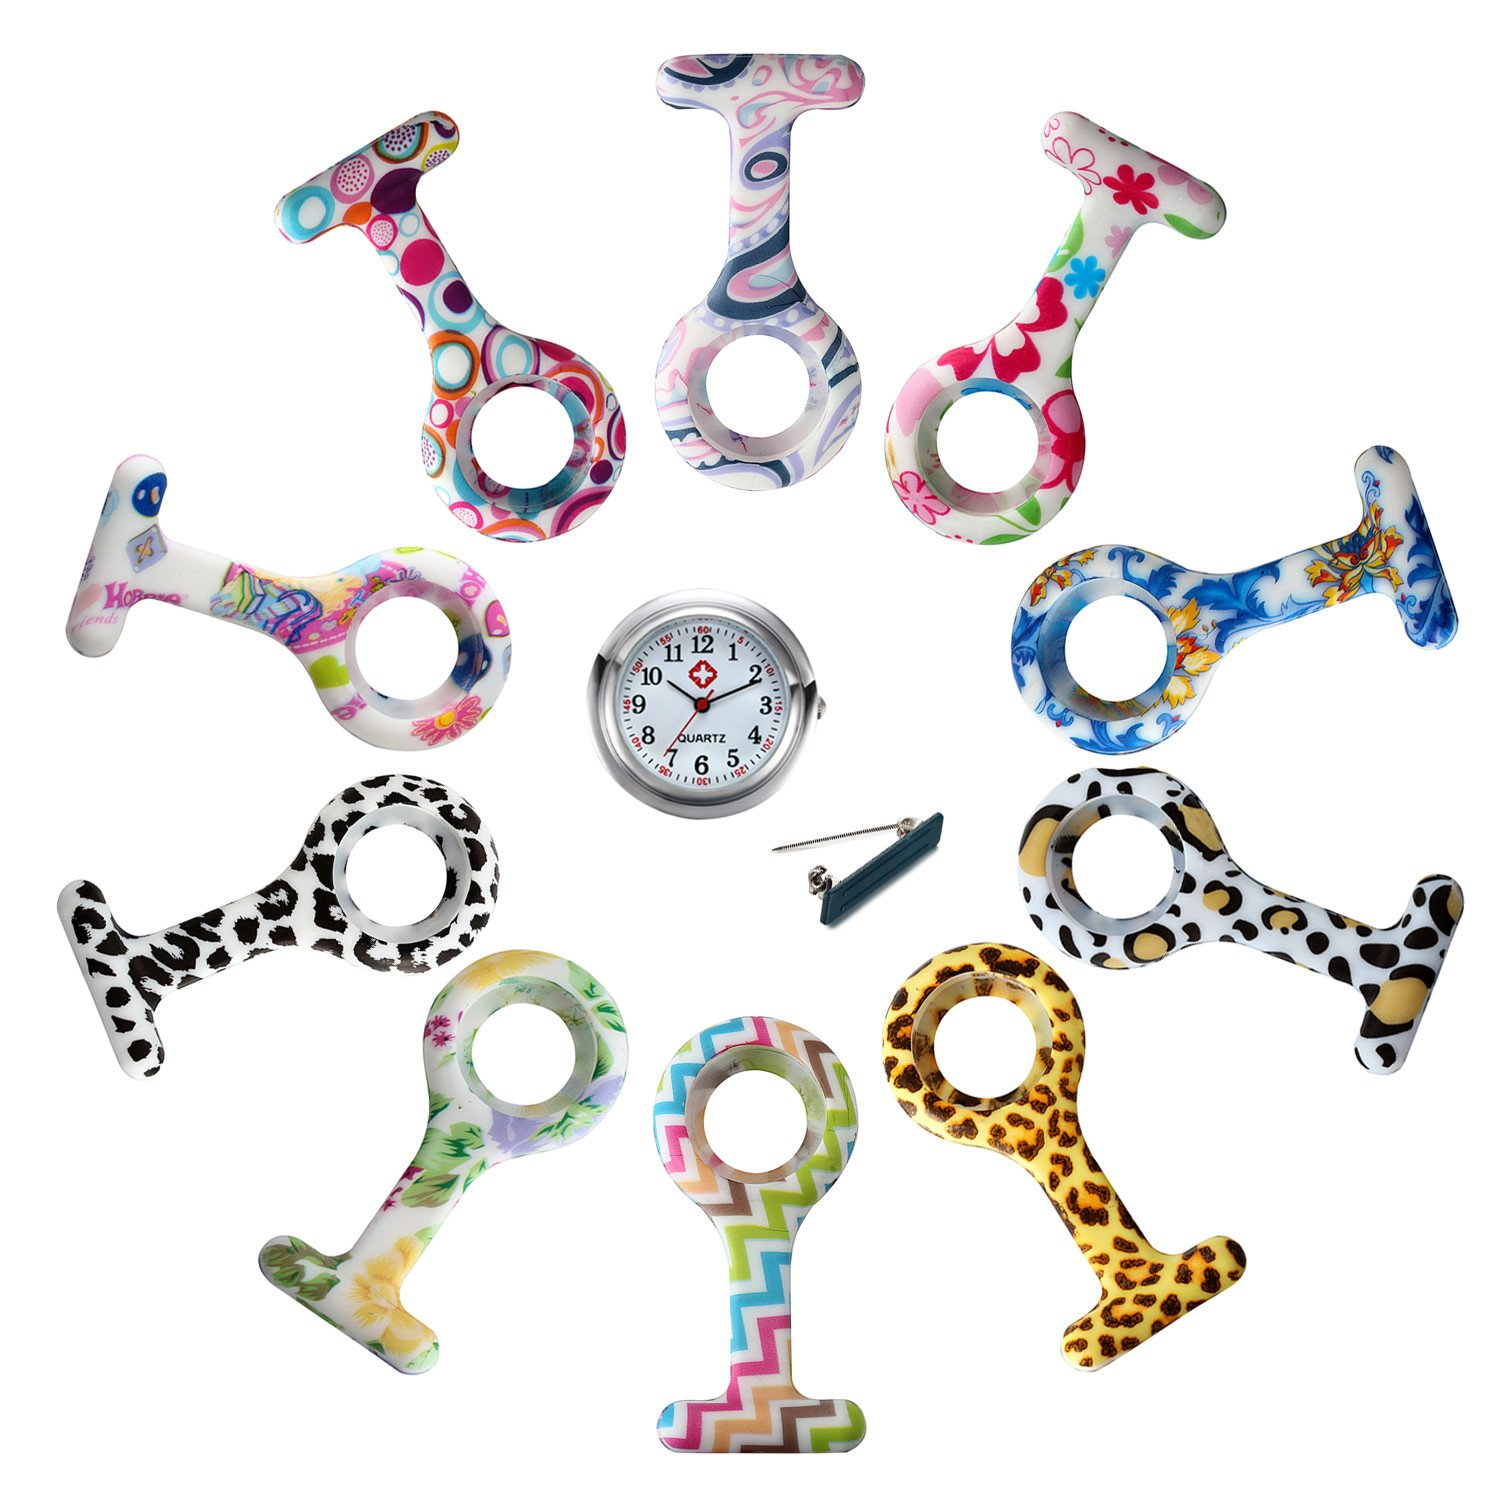 Silicon Nurse Fob Brooch Lapel Hanging Pocket Watch With 10 Replacement Covers